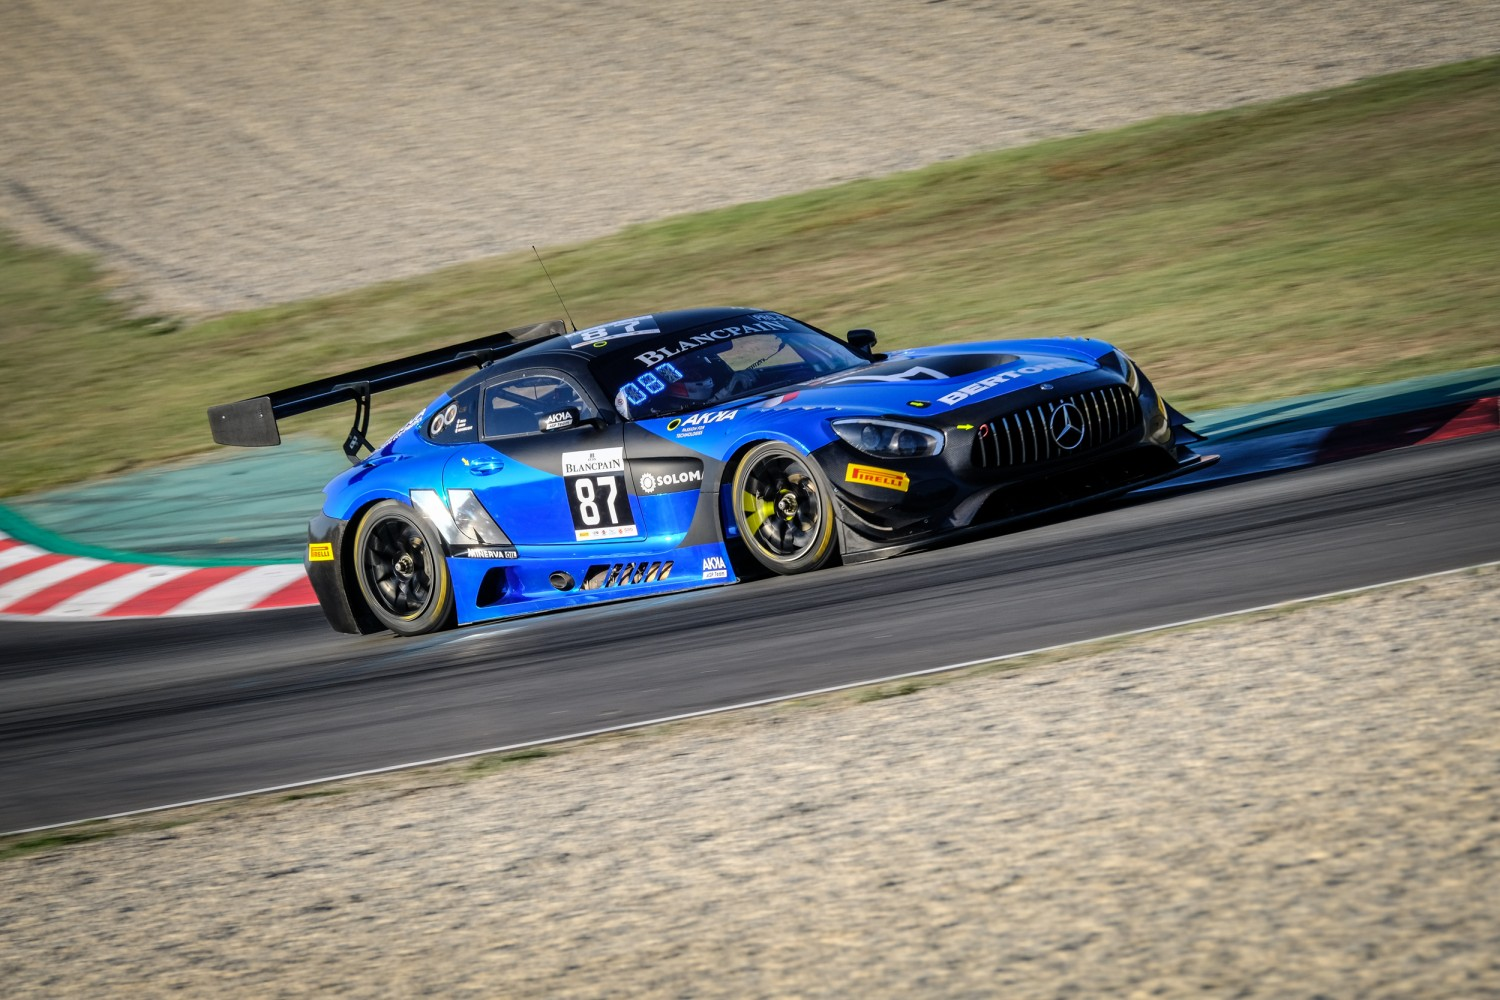 #87 Akka ASP Team FRA Mercedes-AMG GT3 Pro-Am Cup Nicolas Jamin FRA Mauro Ricci ITA Jean-Luc Beaubelique FRA, Free Practice  | SRO / Dirk Bogaerts Photography